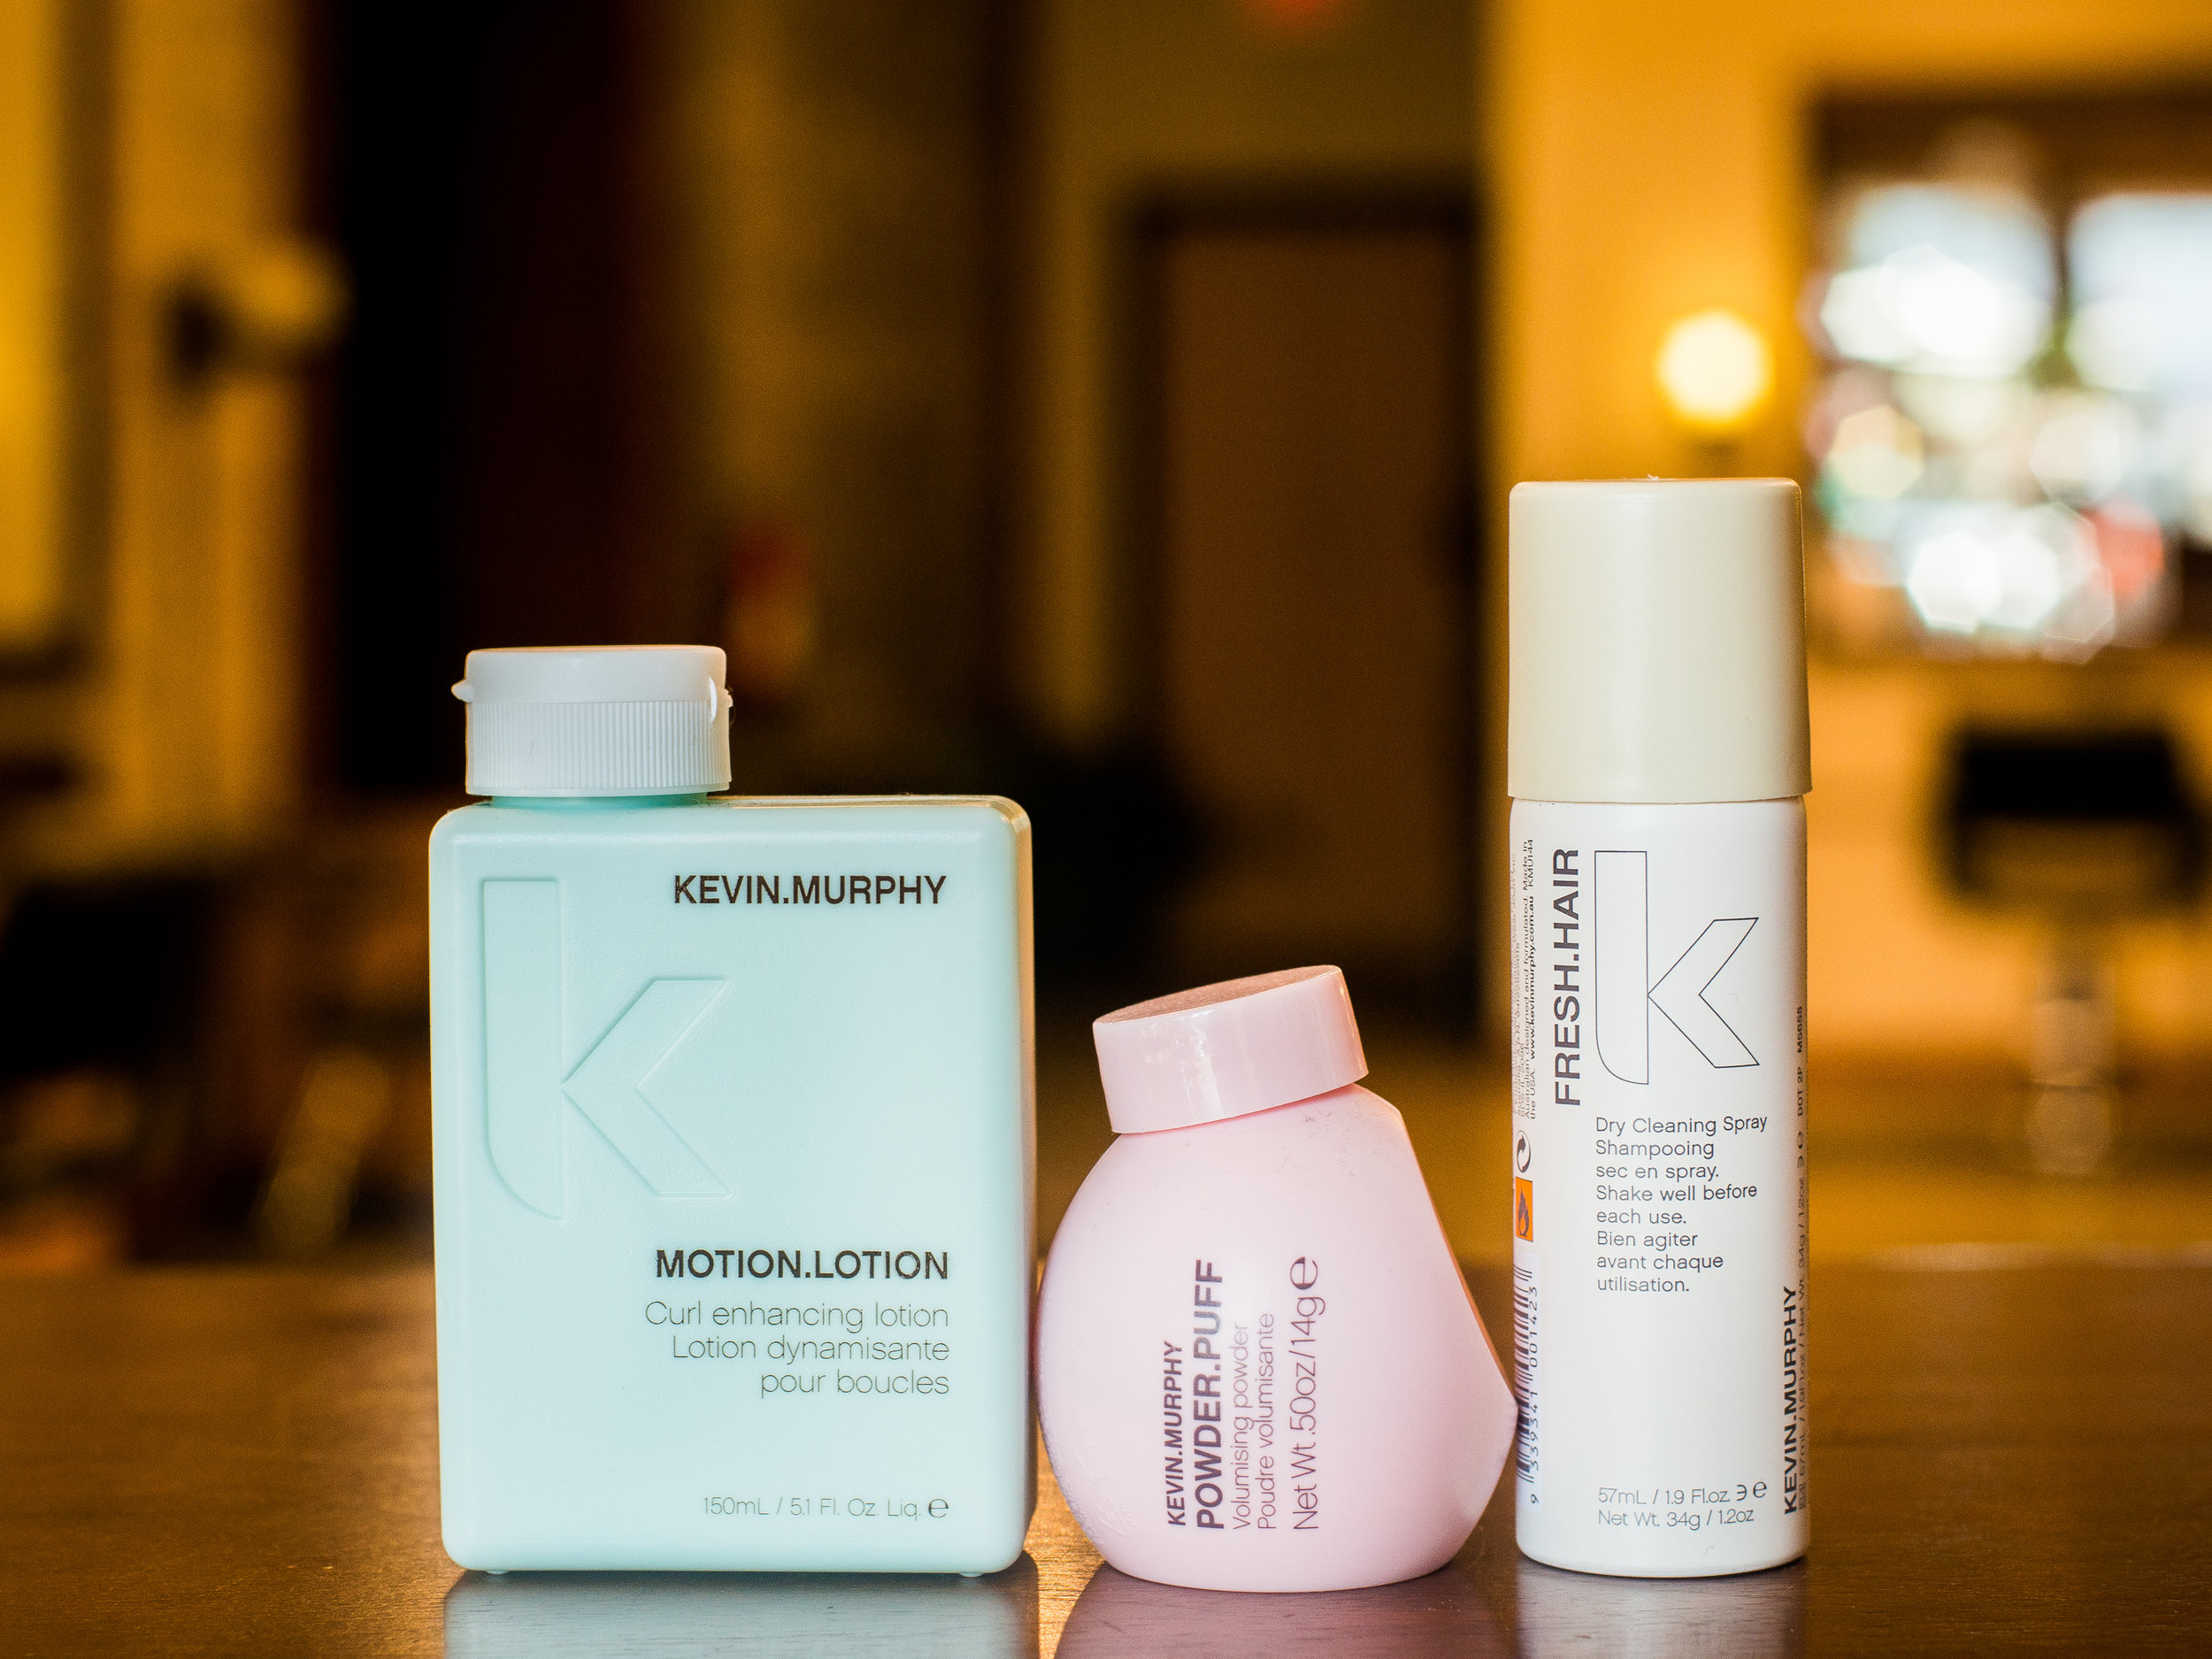 SKINCARE FOR YOUR HAIR - Born from the same philosophy as skincare, KEVIN.MURPHY products are weightlessly designed to deliver performance, strength and longevity. Freya also uses Color.Me by KEVIN.MURPHY which is an artful blend of gentle and